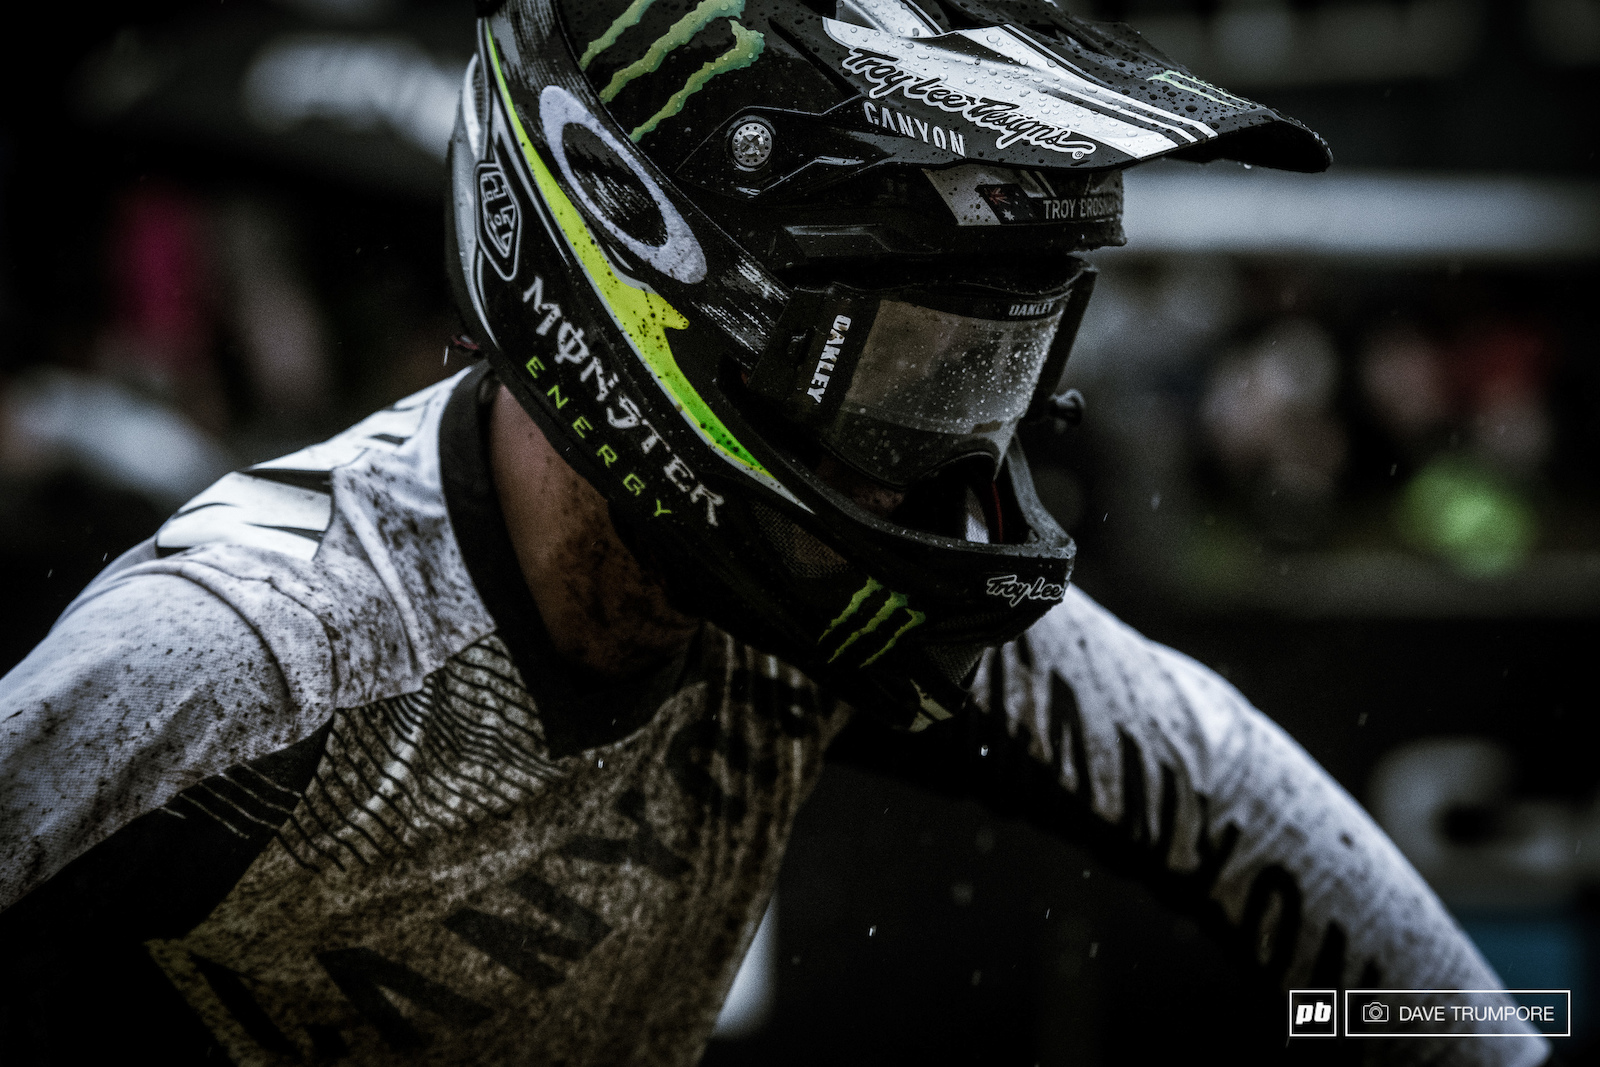 Troy Brosnan had an incredible rider in the mud to finish 6th and score valuable points for the overall. He may have dropped a place to Gwin but is still very much in contention for the title.